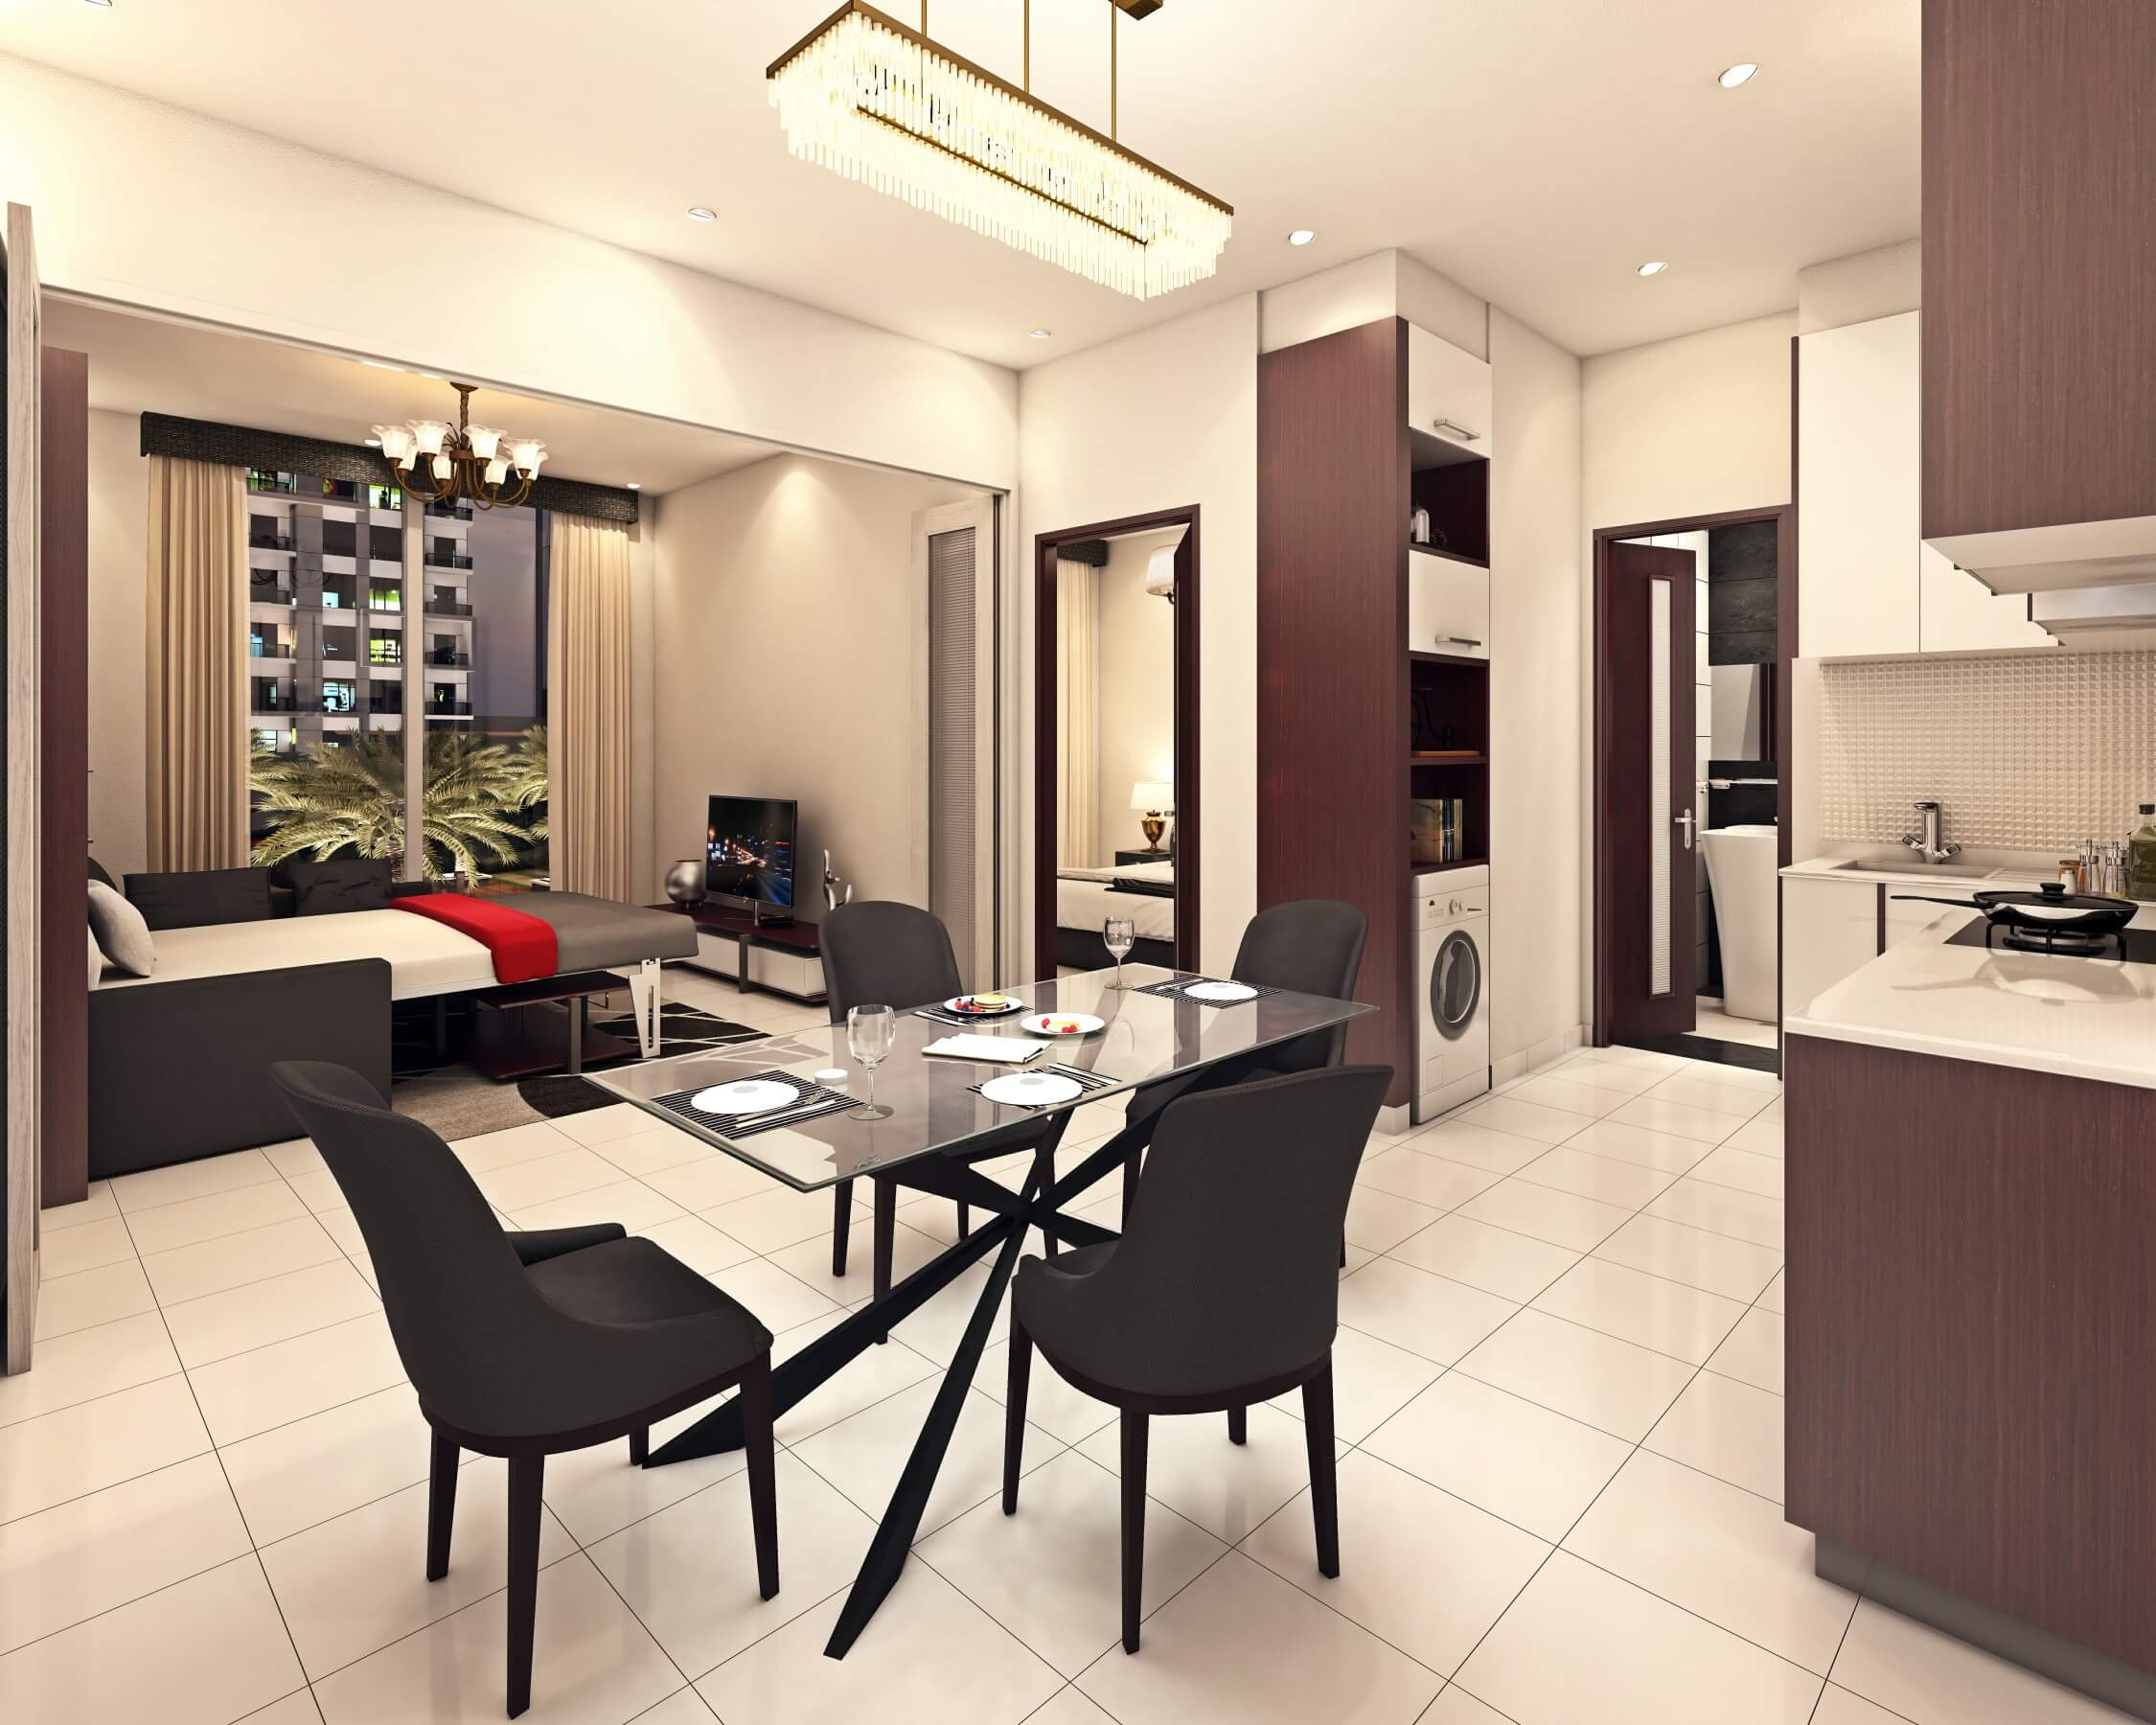 danube lawnz apartment interiors8